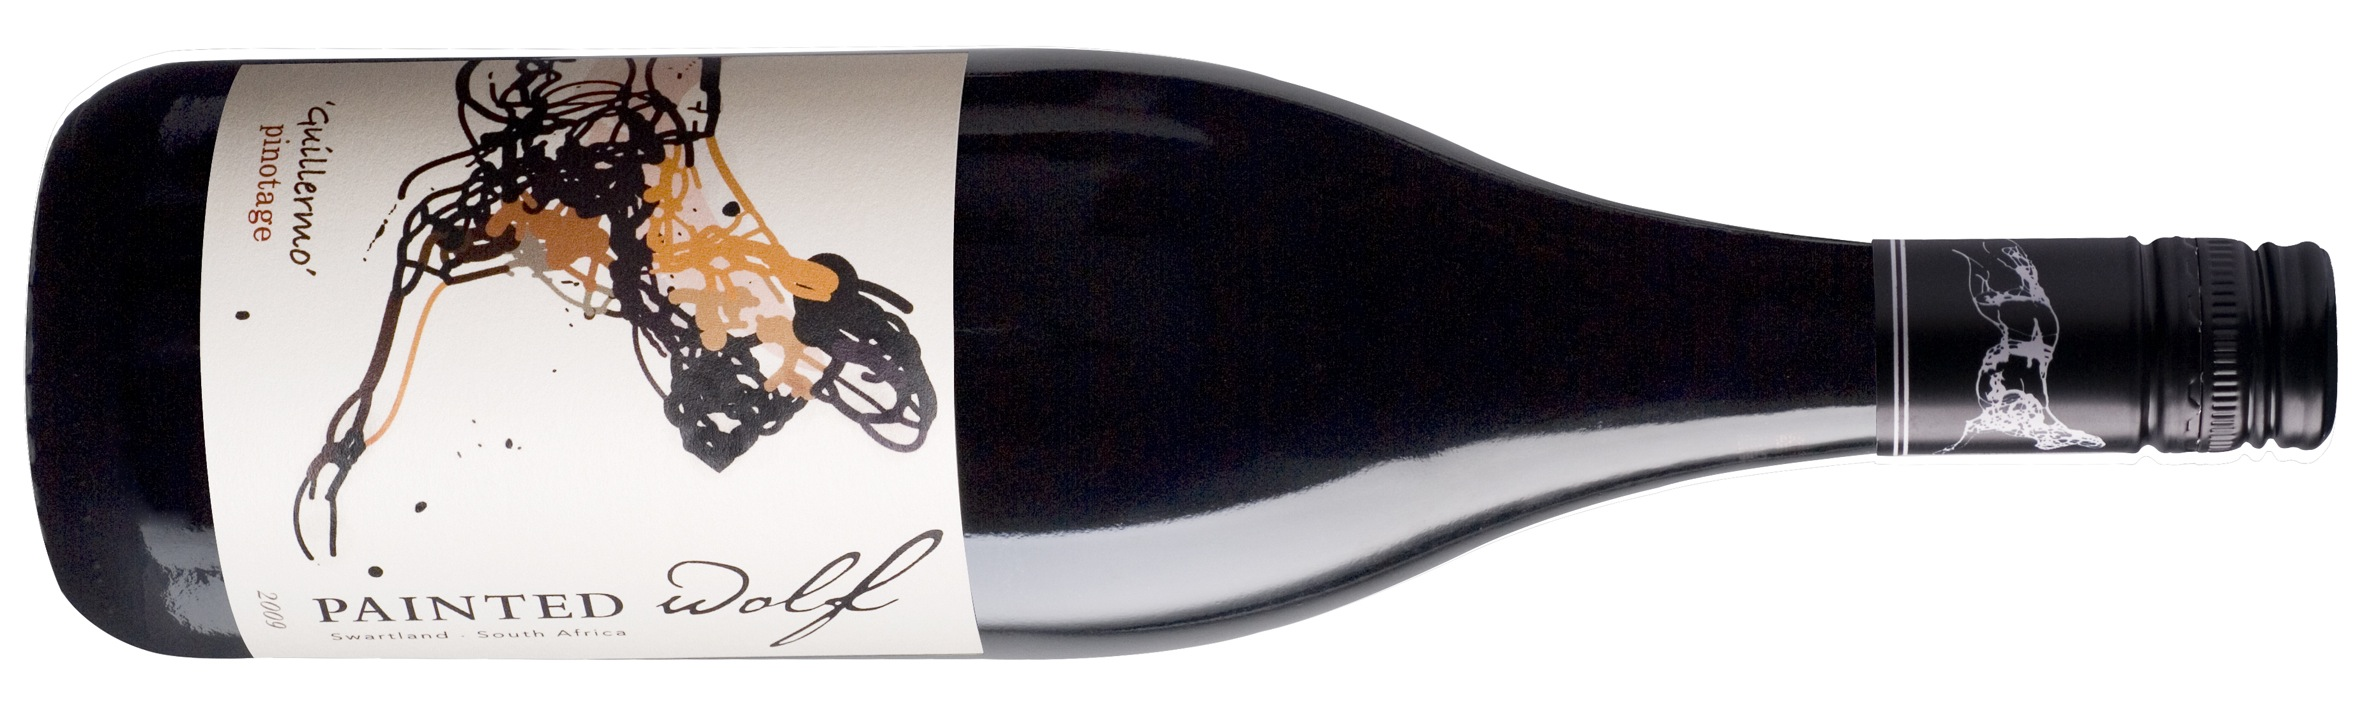 Painted wolf guillermo pinotage 2009 – 31:10:12